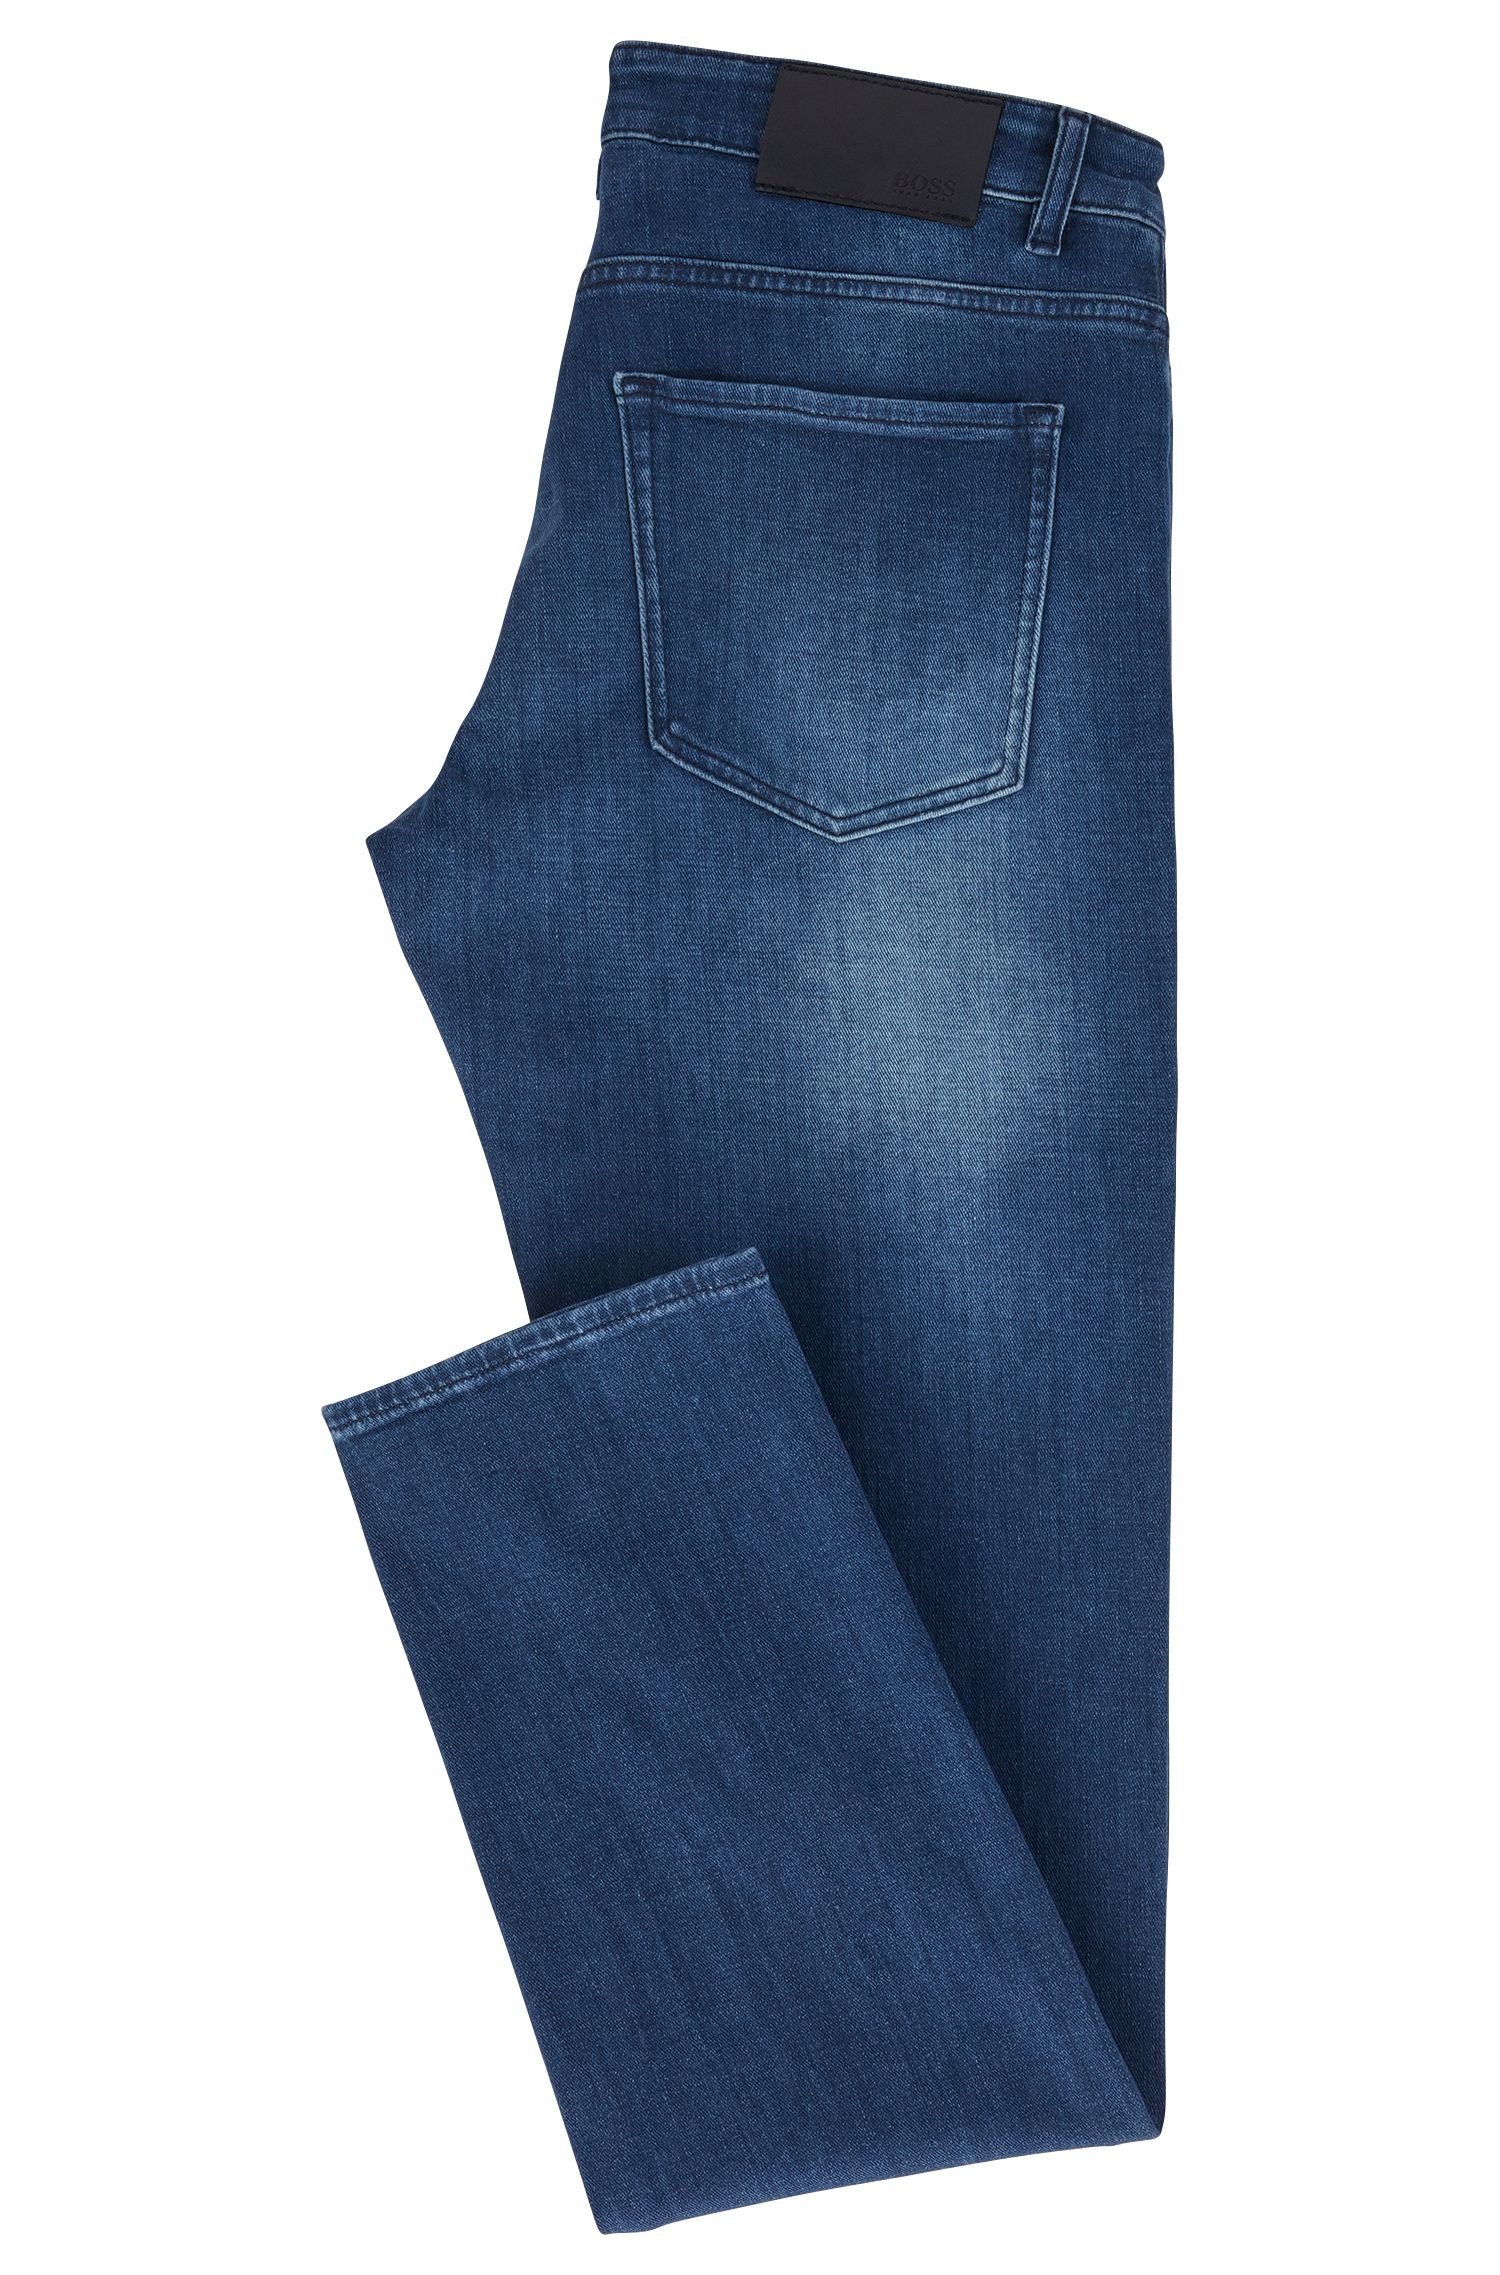 Slim-Fit Jeans aus besonders softem Stretch-Denim